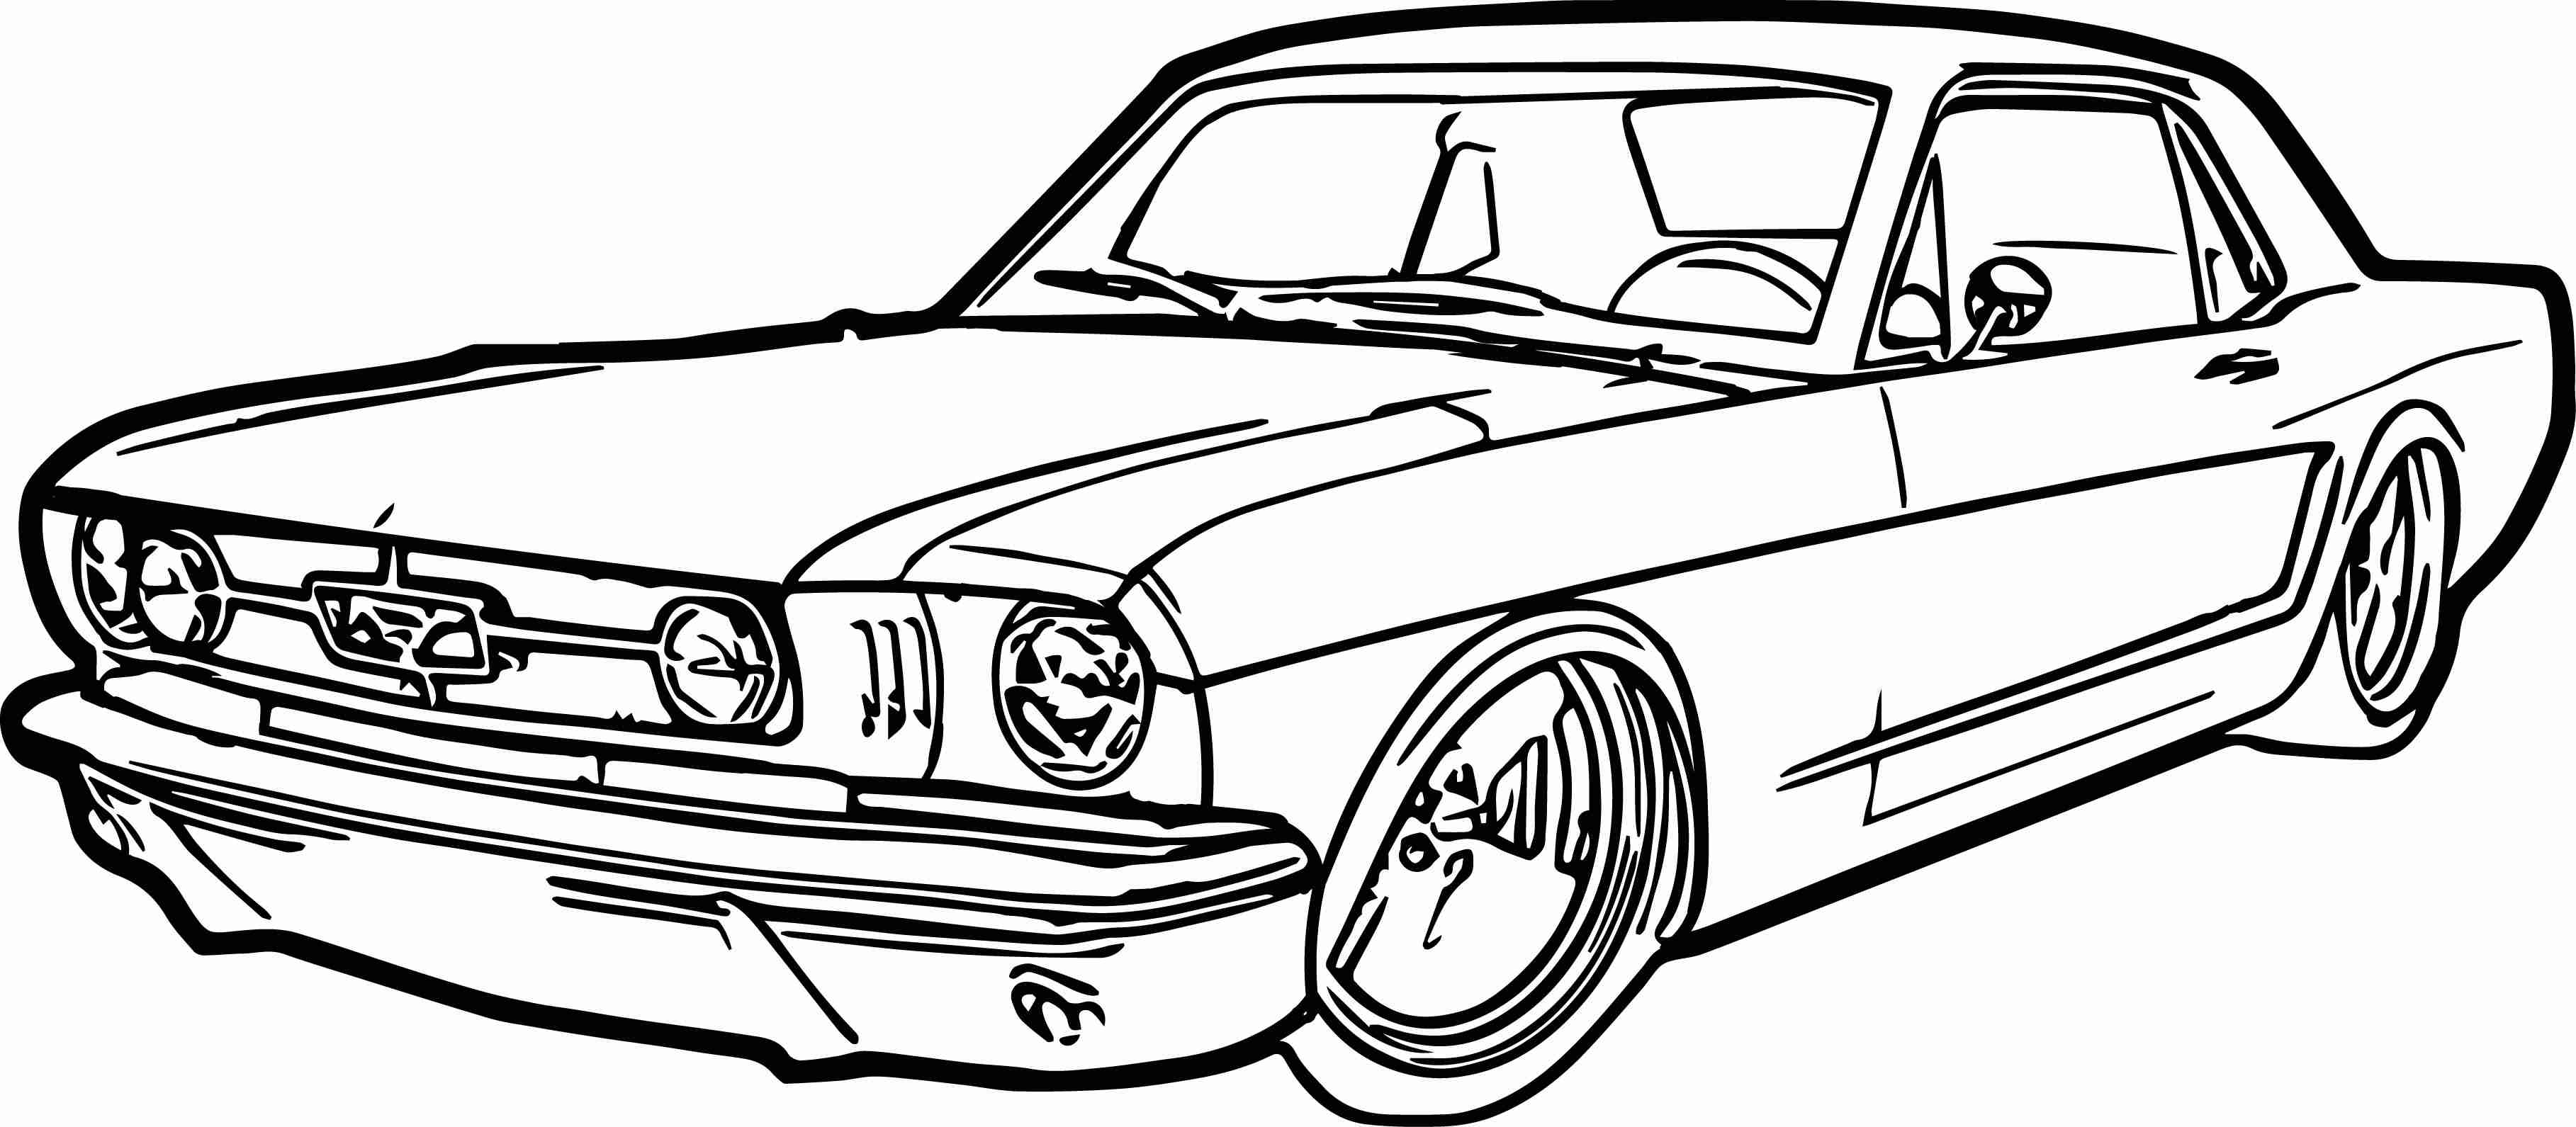 3635x1591 Ford Mustang Car Coloring Page Wecoloringpage Unusual Pages